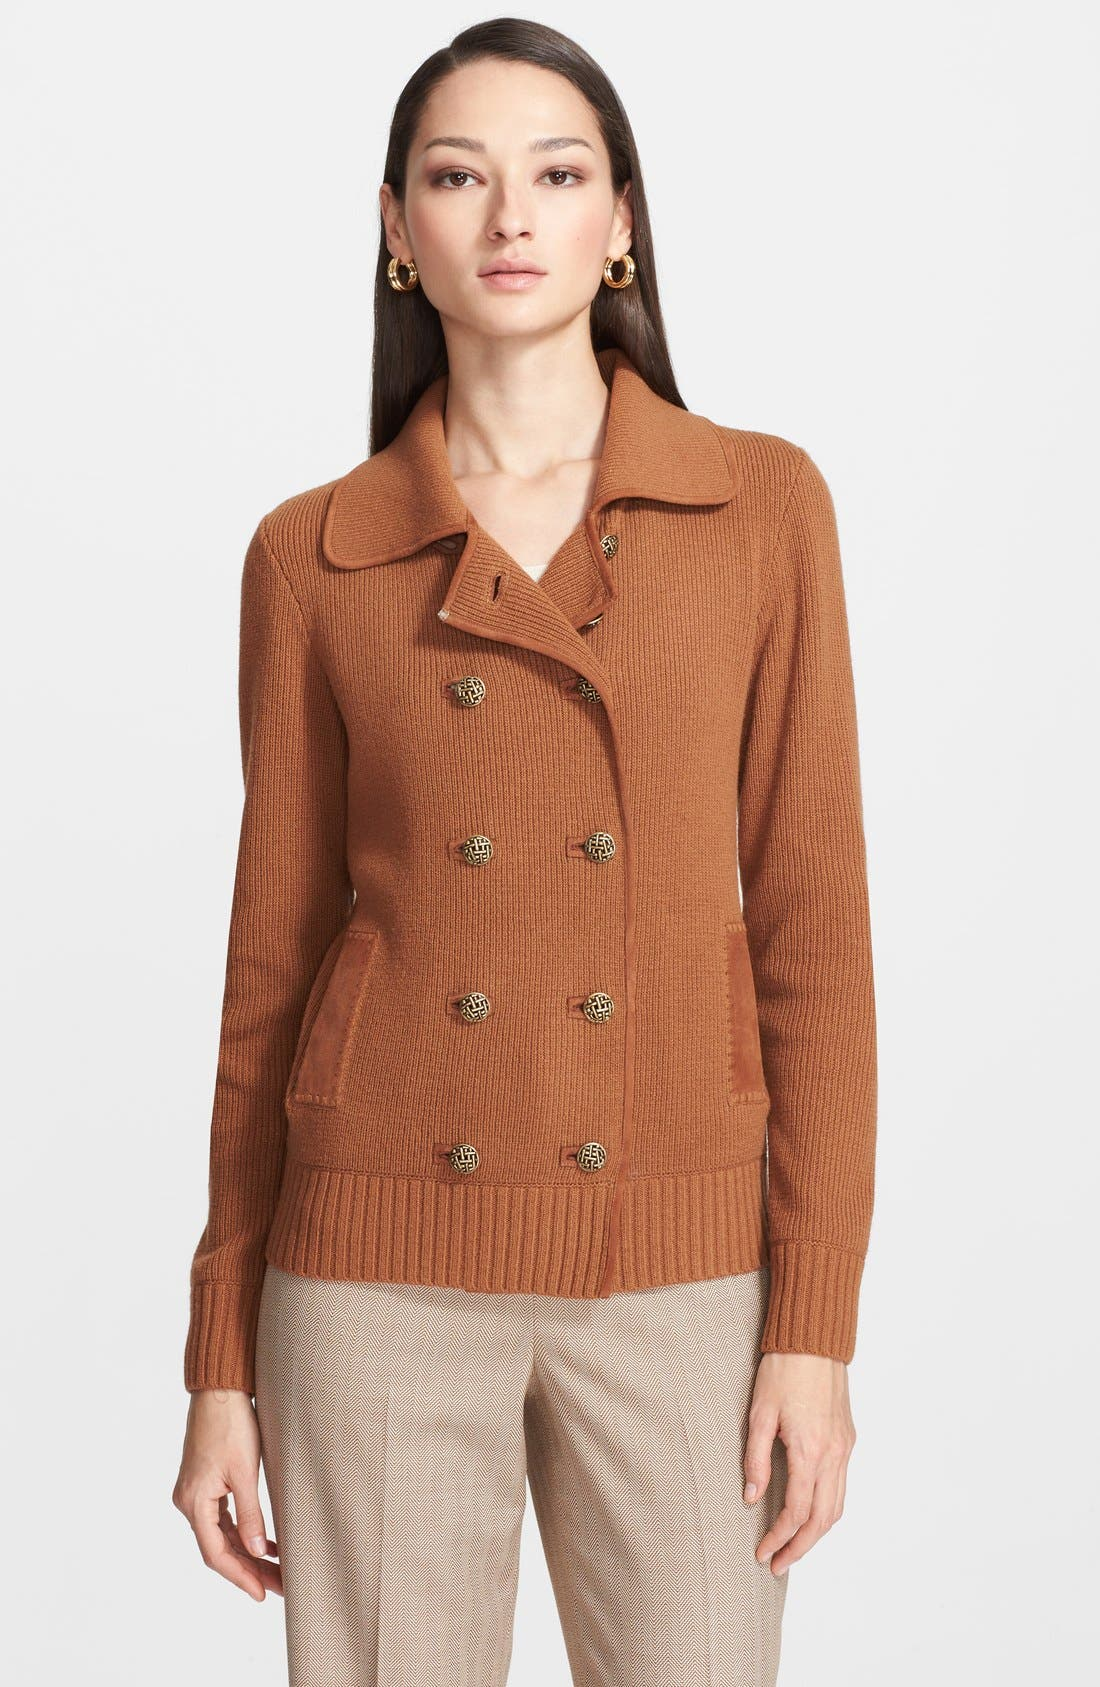 Main Image - St. John Collection Double Breasted Wool & Cashmere Jacket with Suede Trim